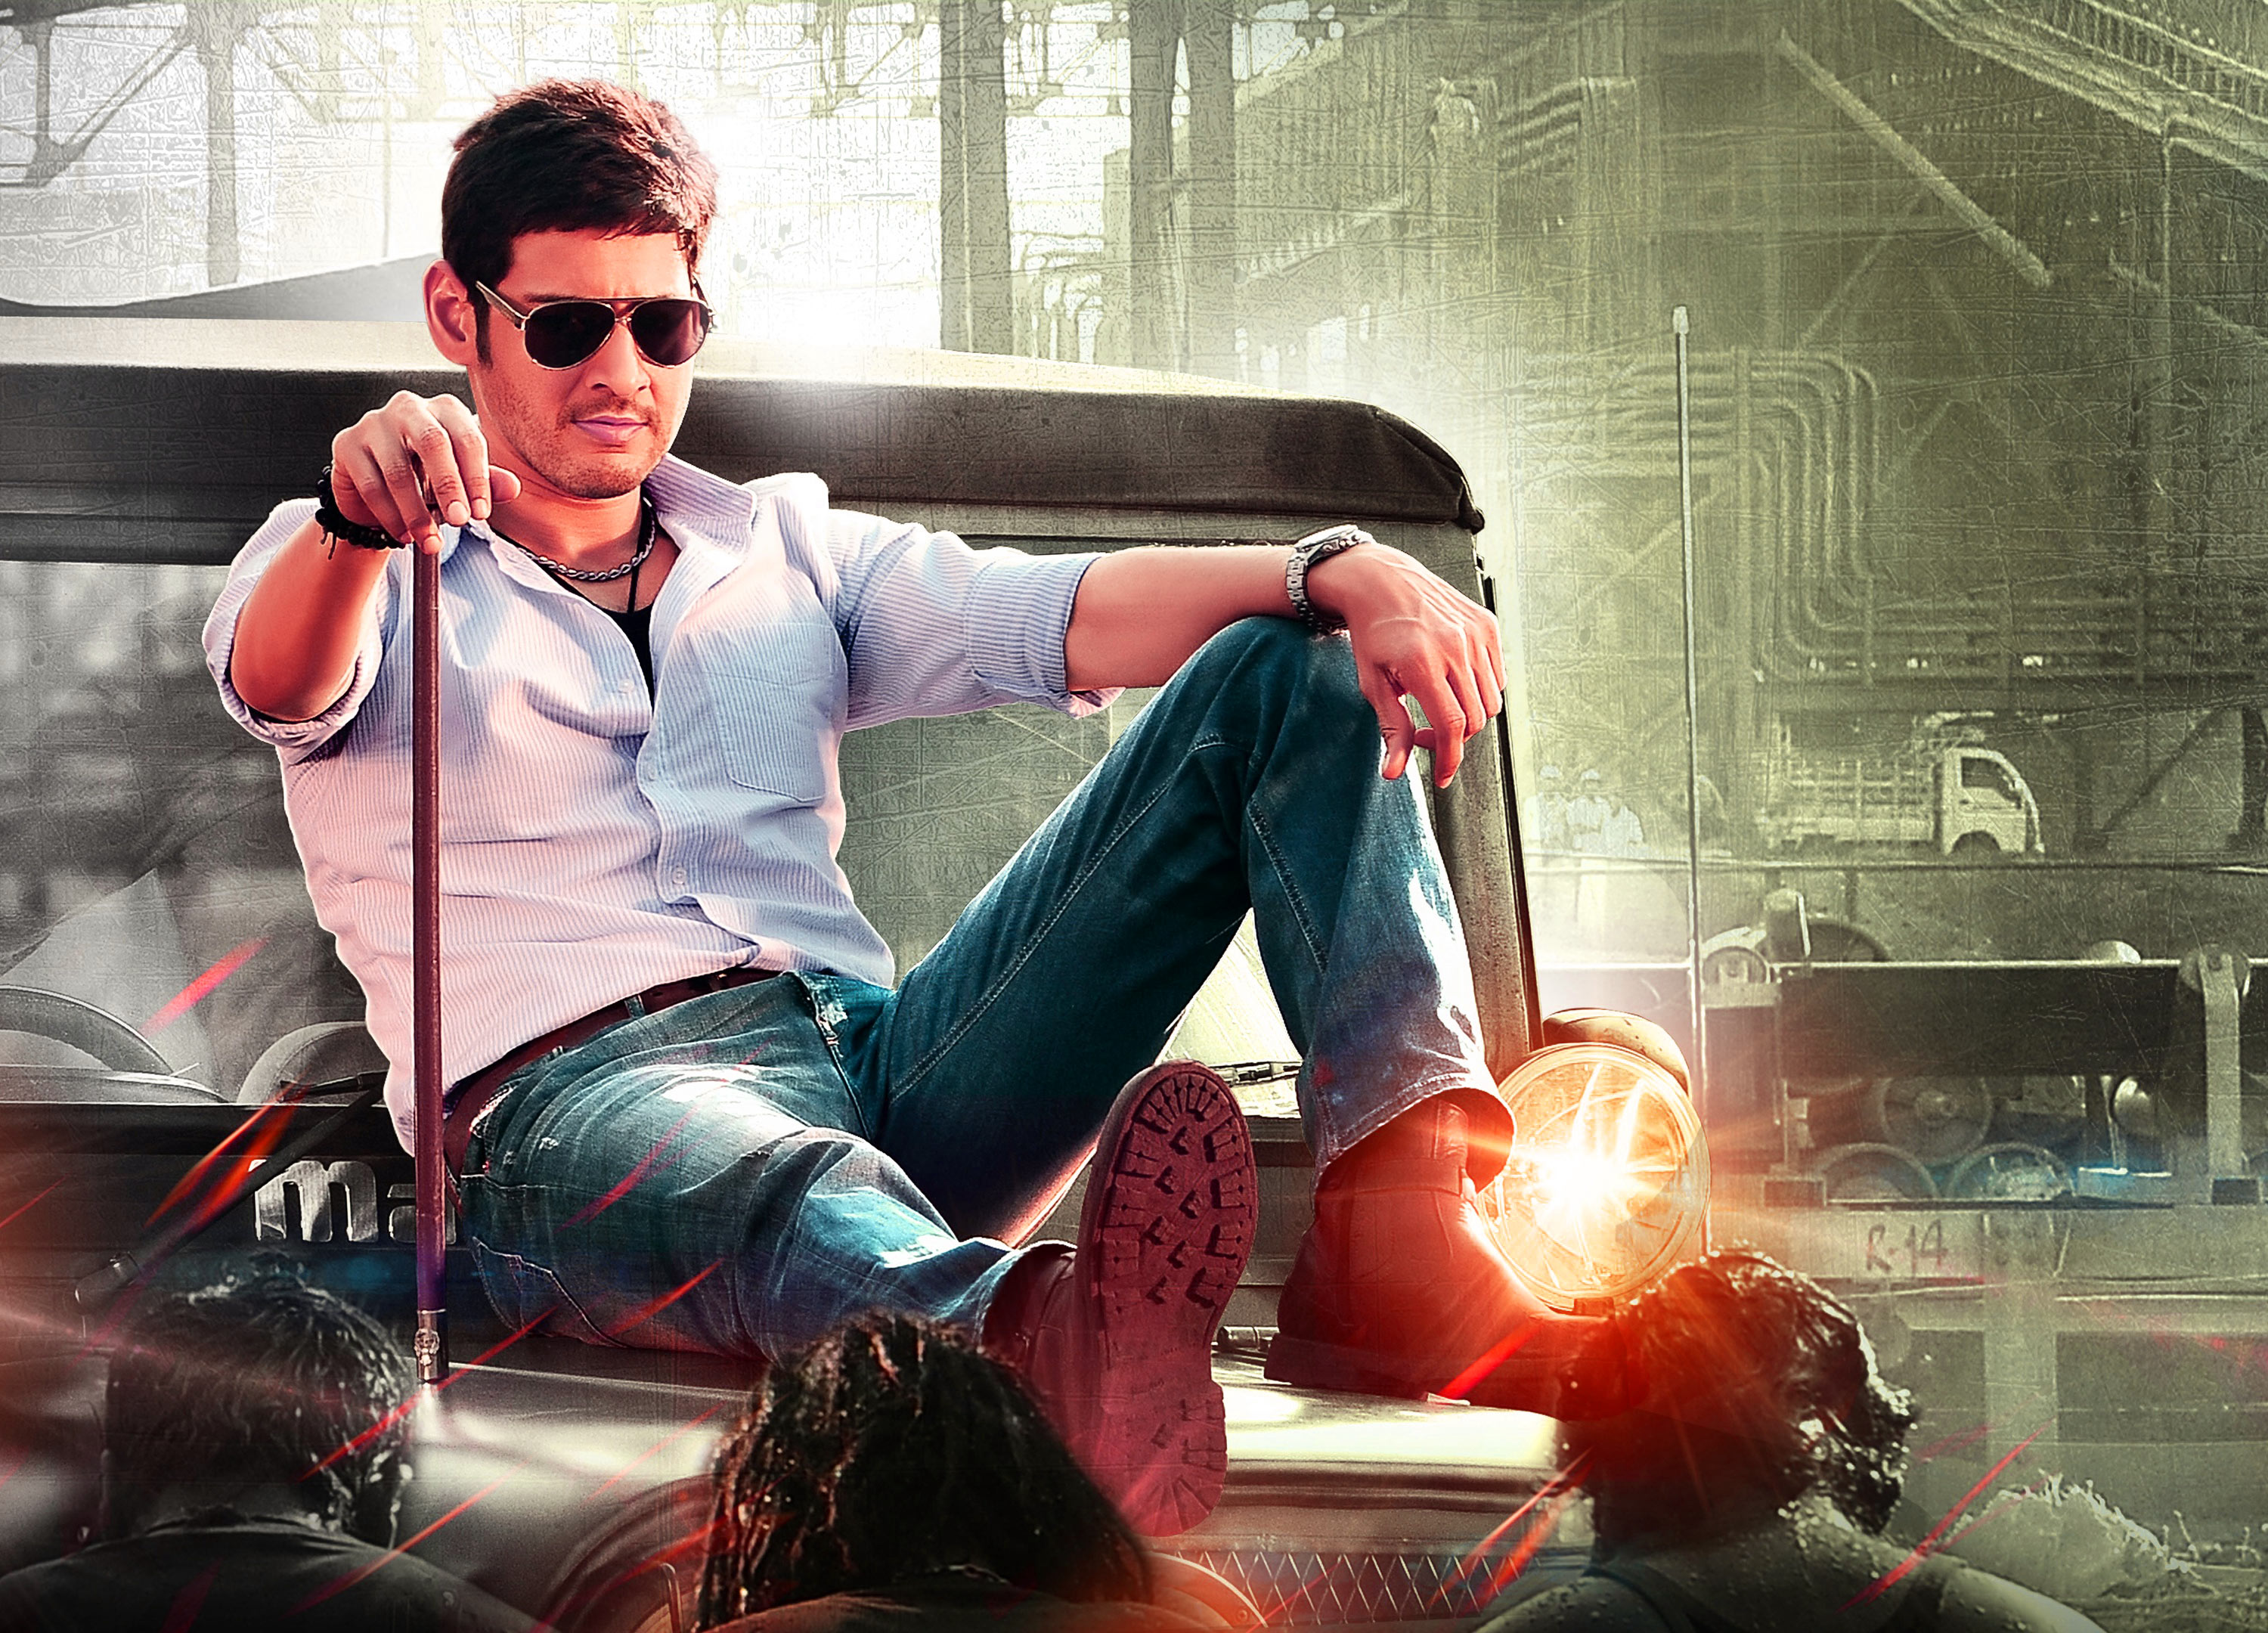 Mahesh babu photo 4